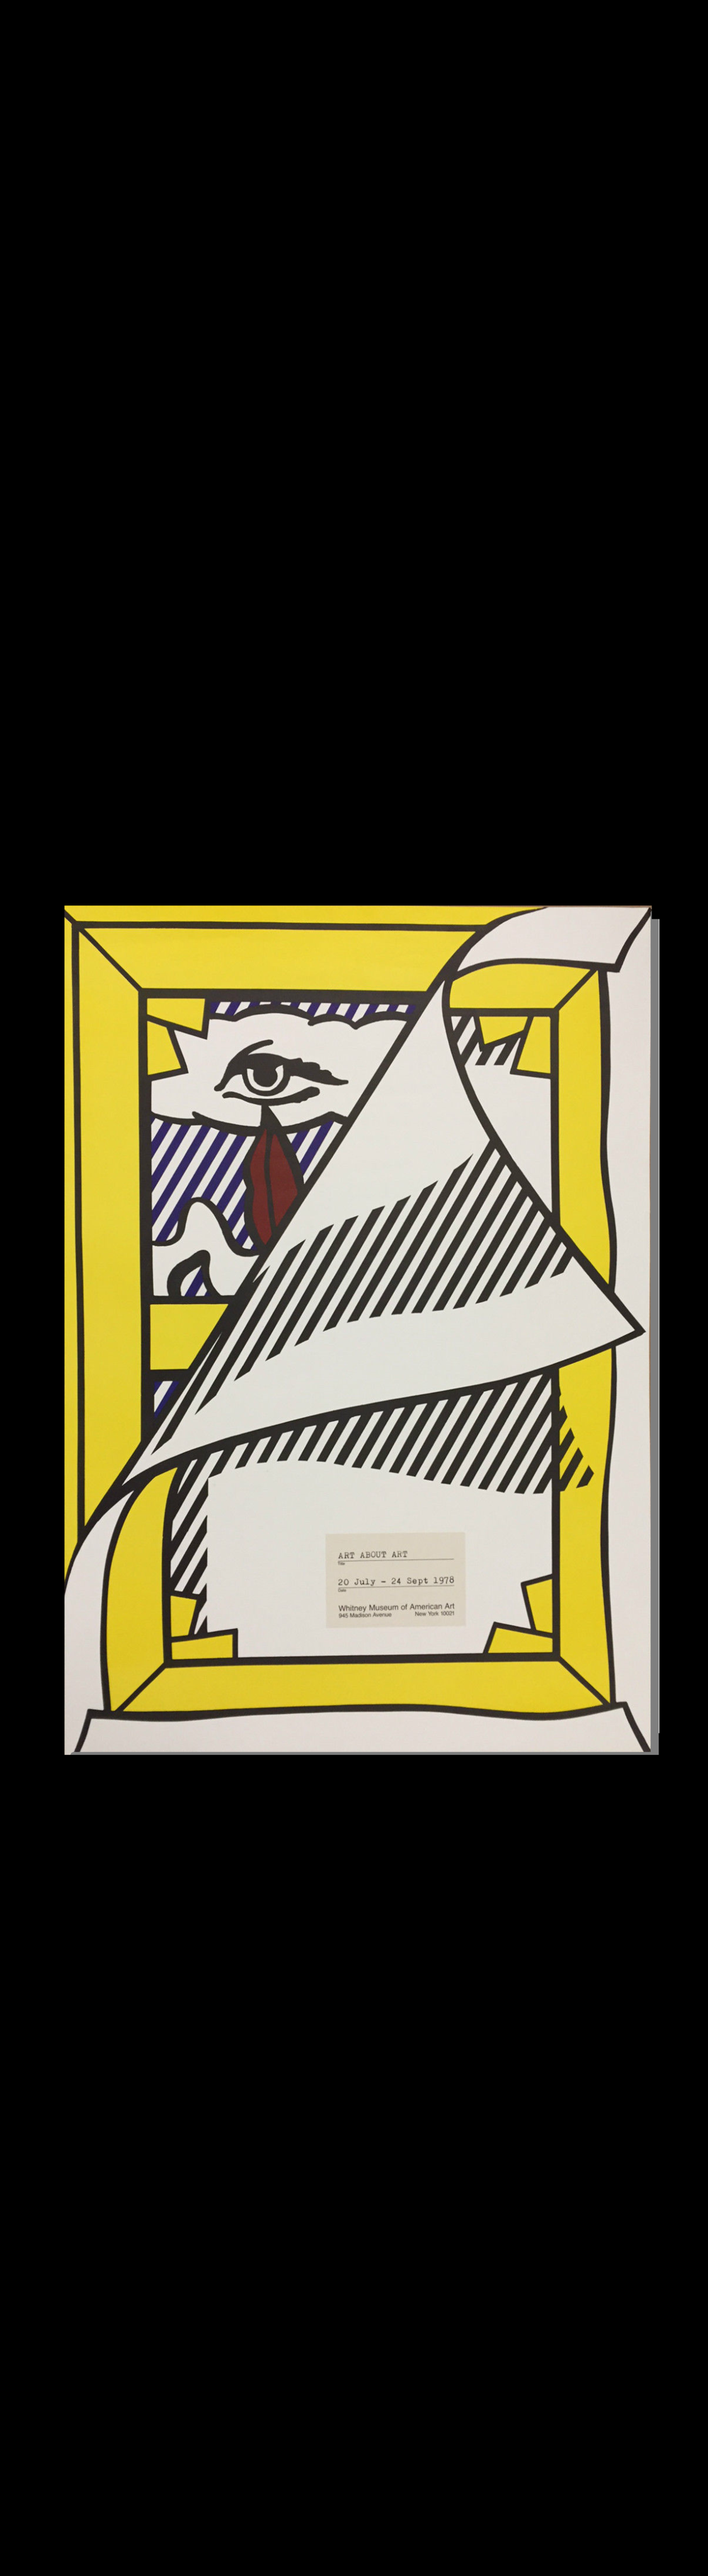 """Art About Art"",  1978, Whitney Museum Exhibition Poster."